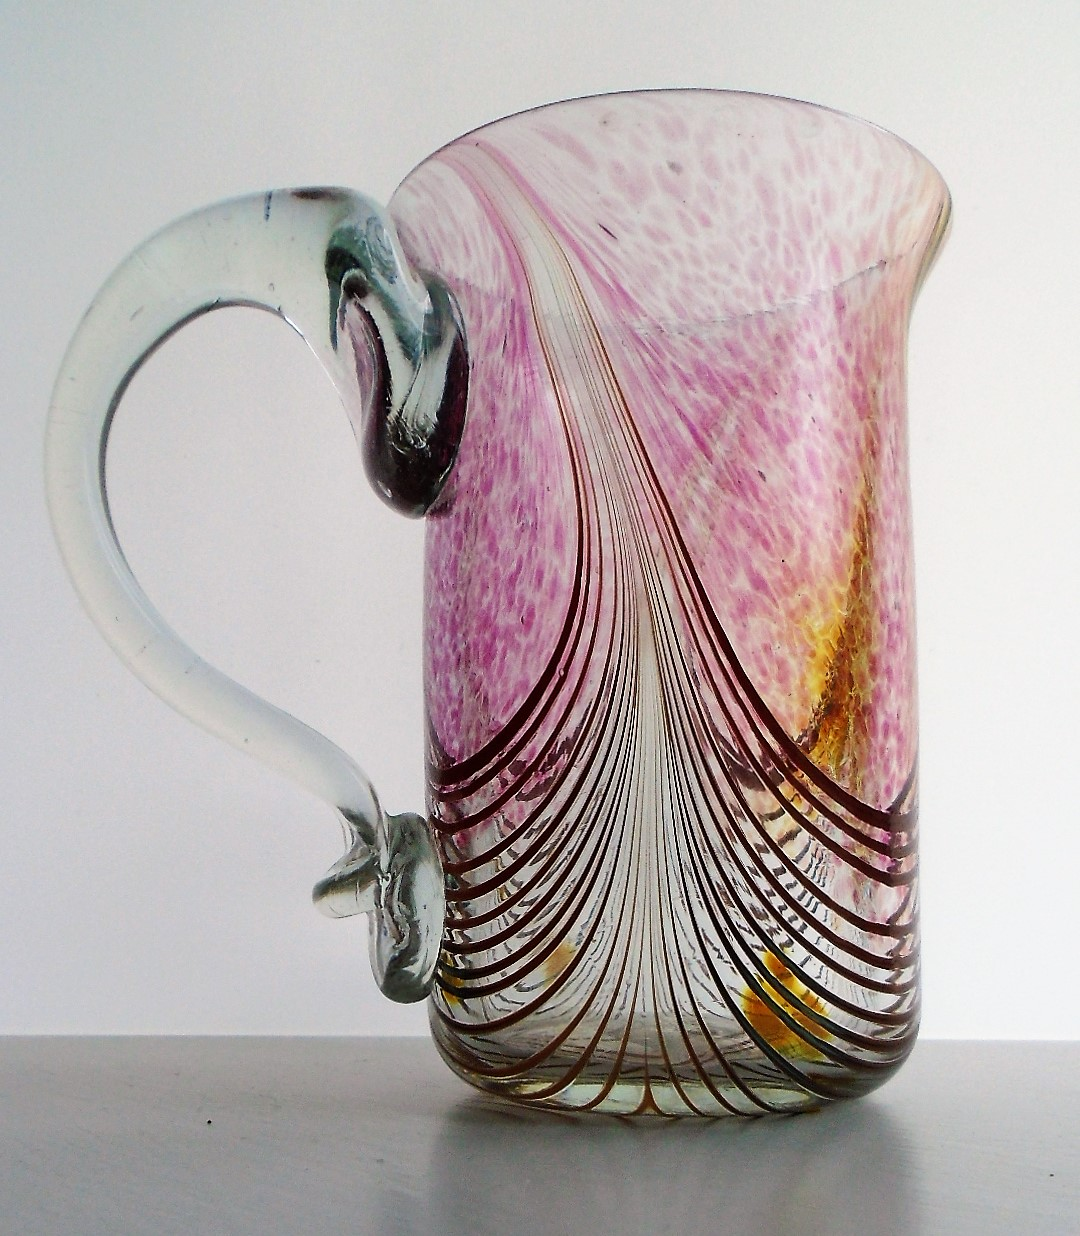 SIGNED GEORGE ELLIOTT STUDIO GLASS MUG